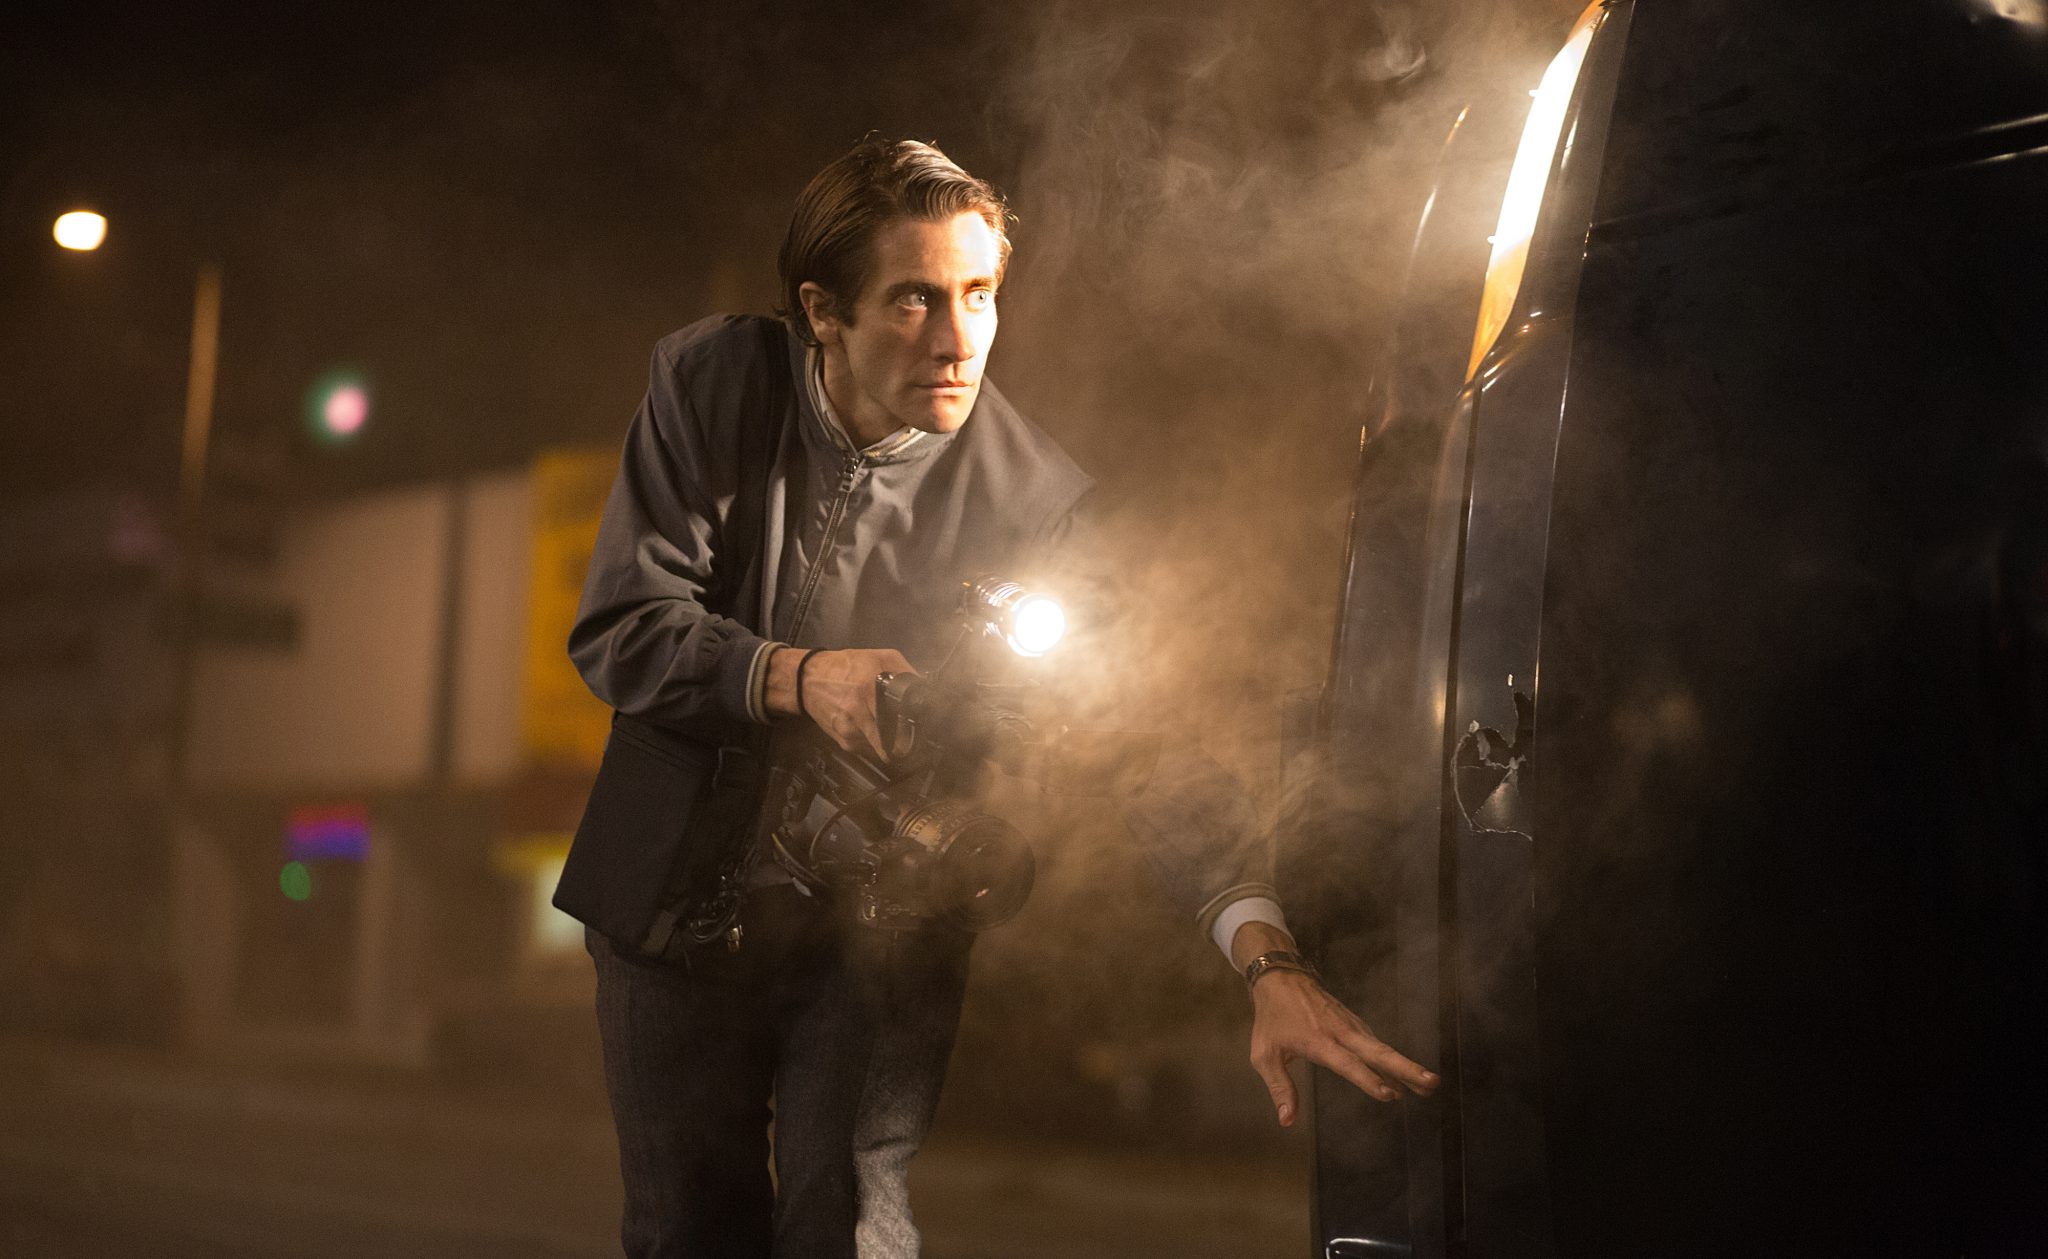 Review: 'Nightcrawler' is Jake Gyllenhaal's Most Memorable Performance Yet